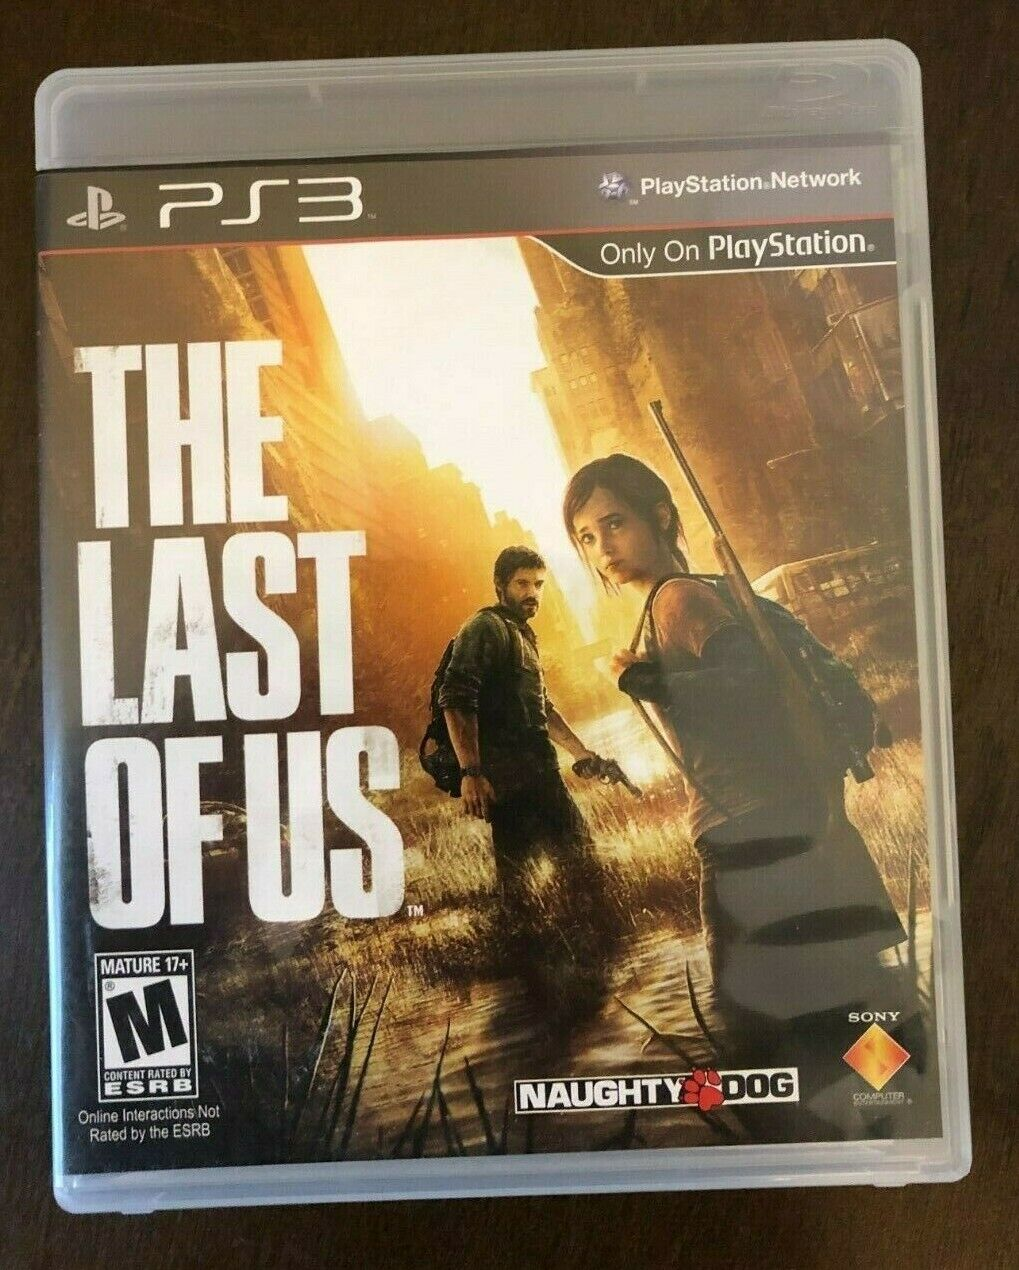 The Last Of Us Sony PlayStation 3, PS3, 2013 MANUAL INCLUDED - $8.99